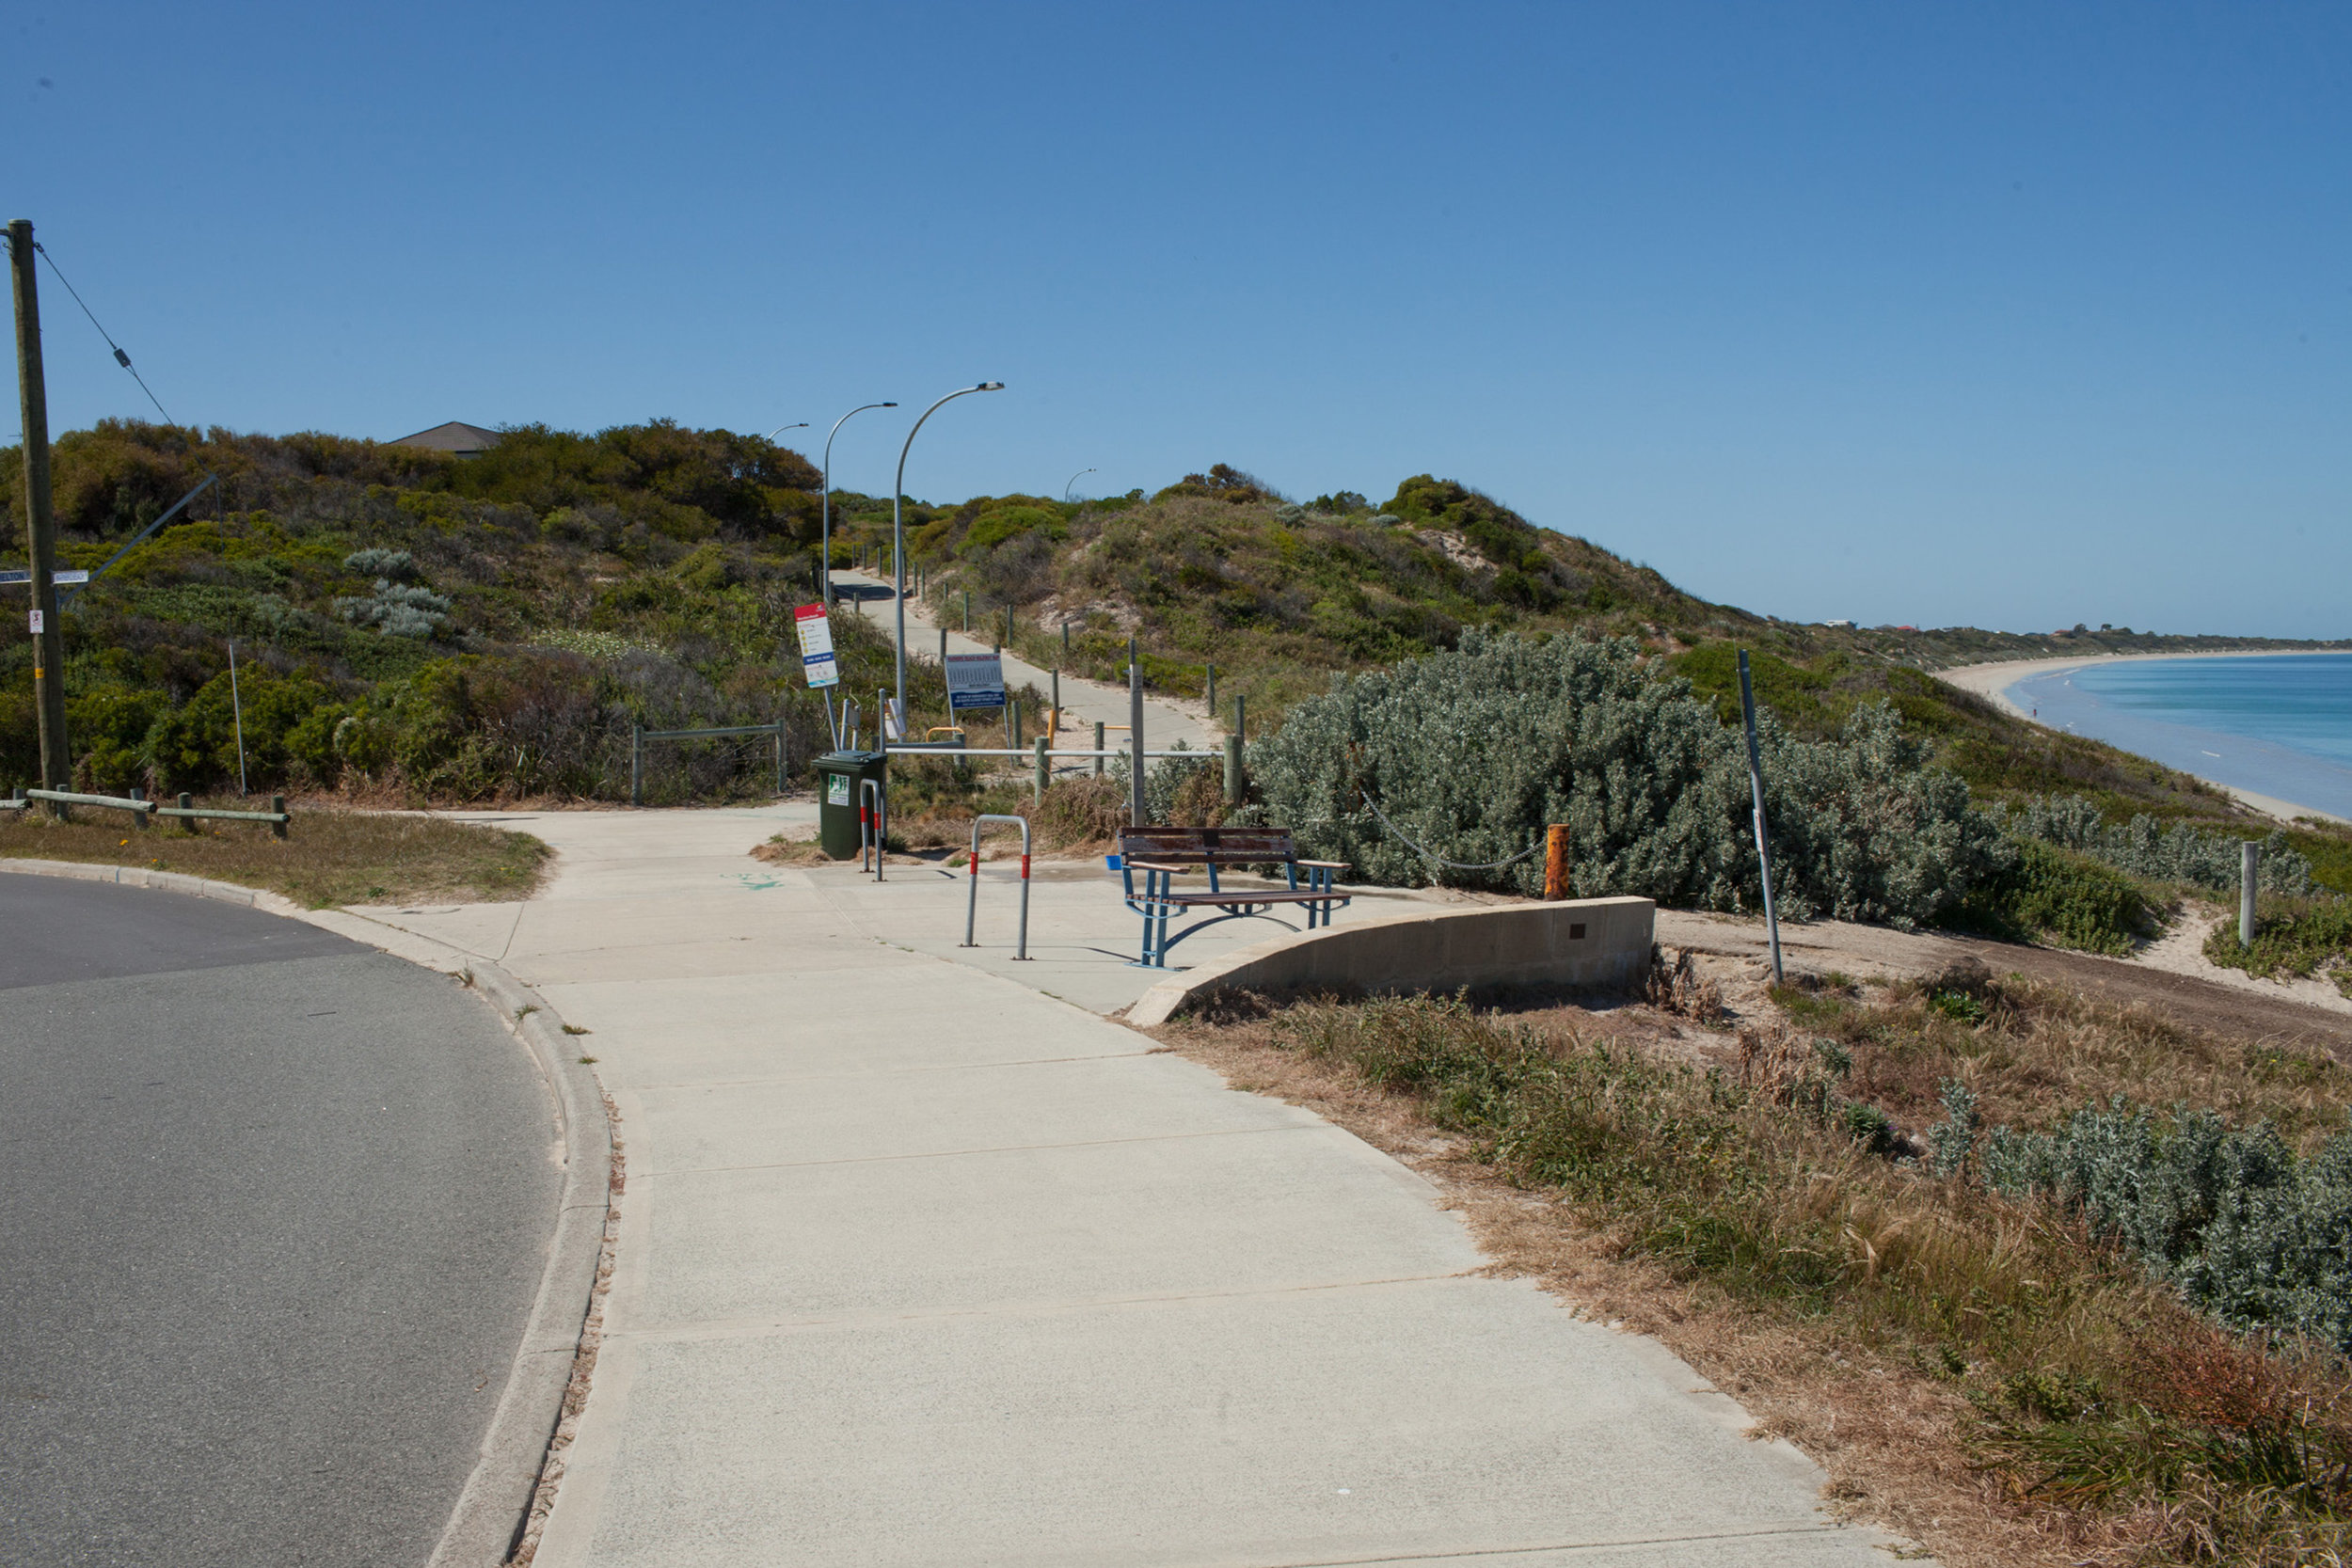 Plate 10: End of the walk showing the road bending left and the increased coastal setbacks.